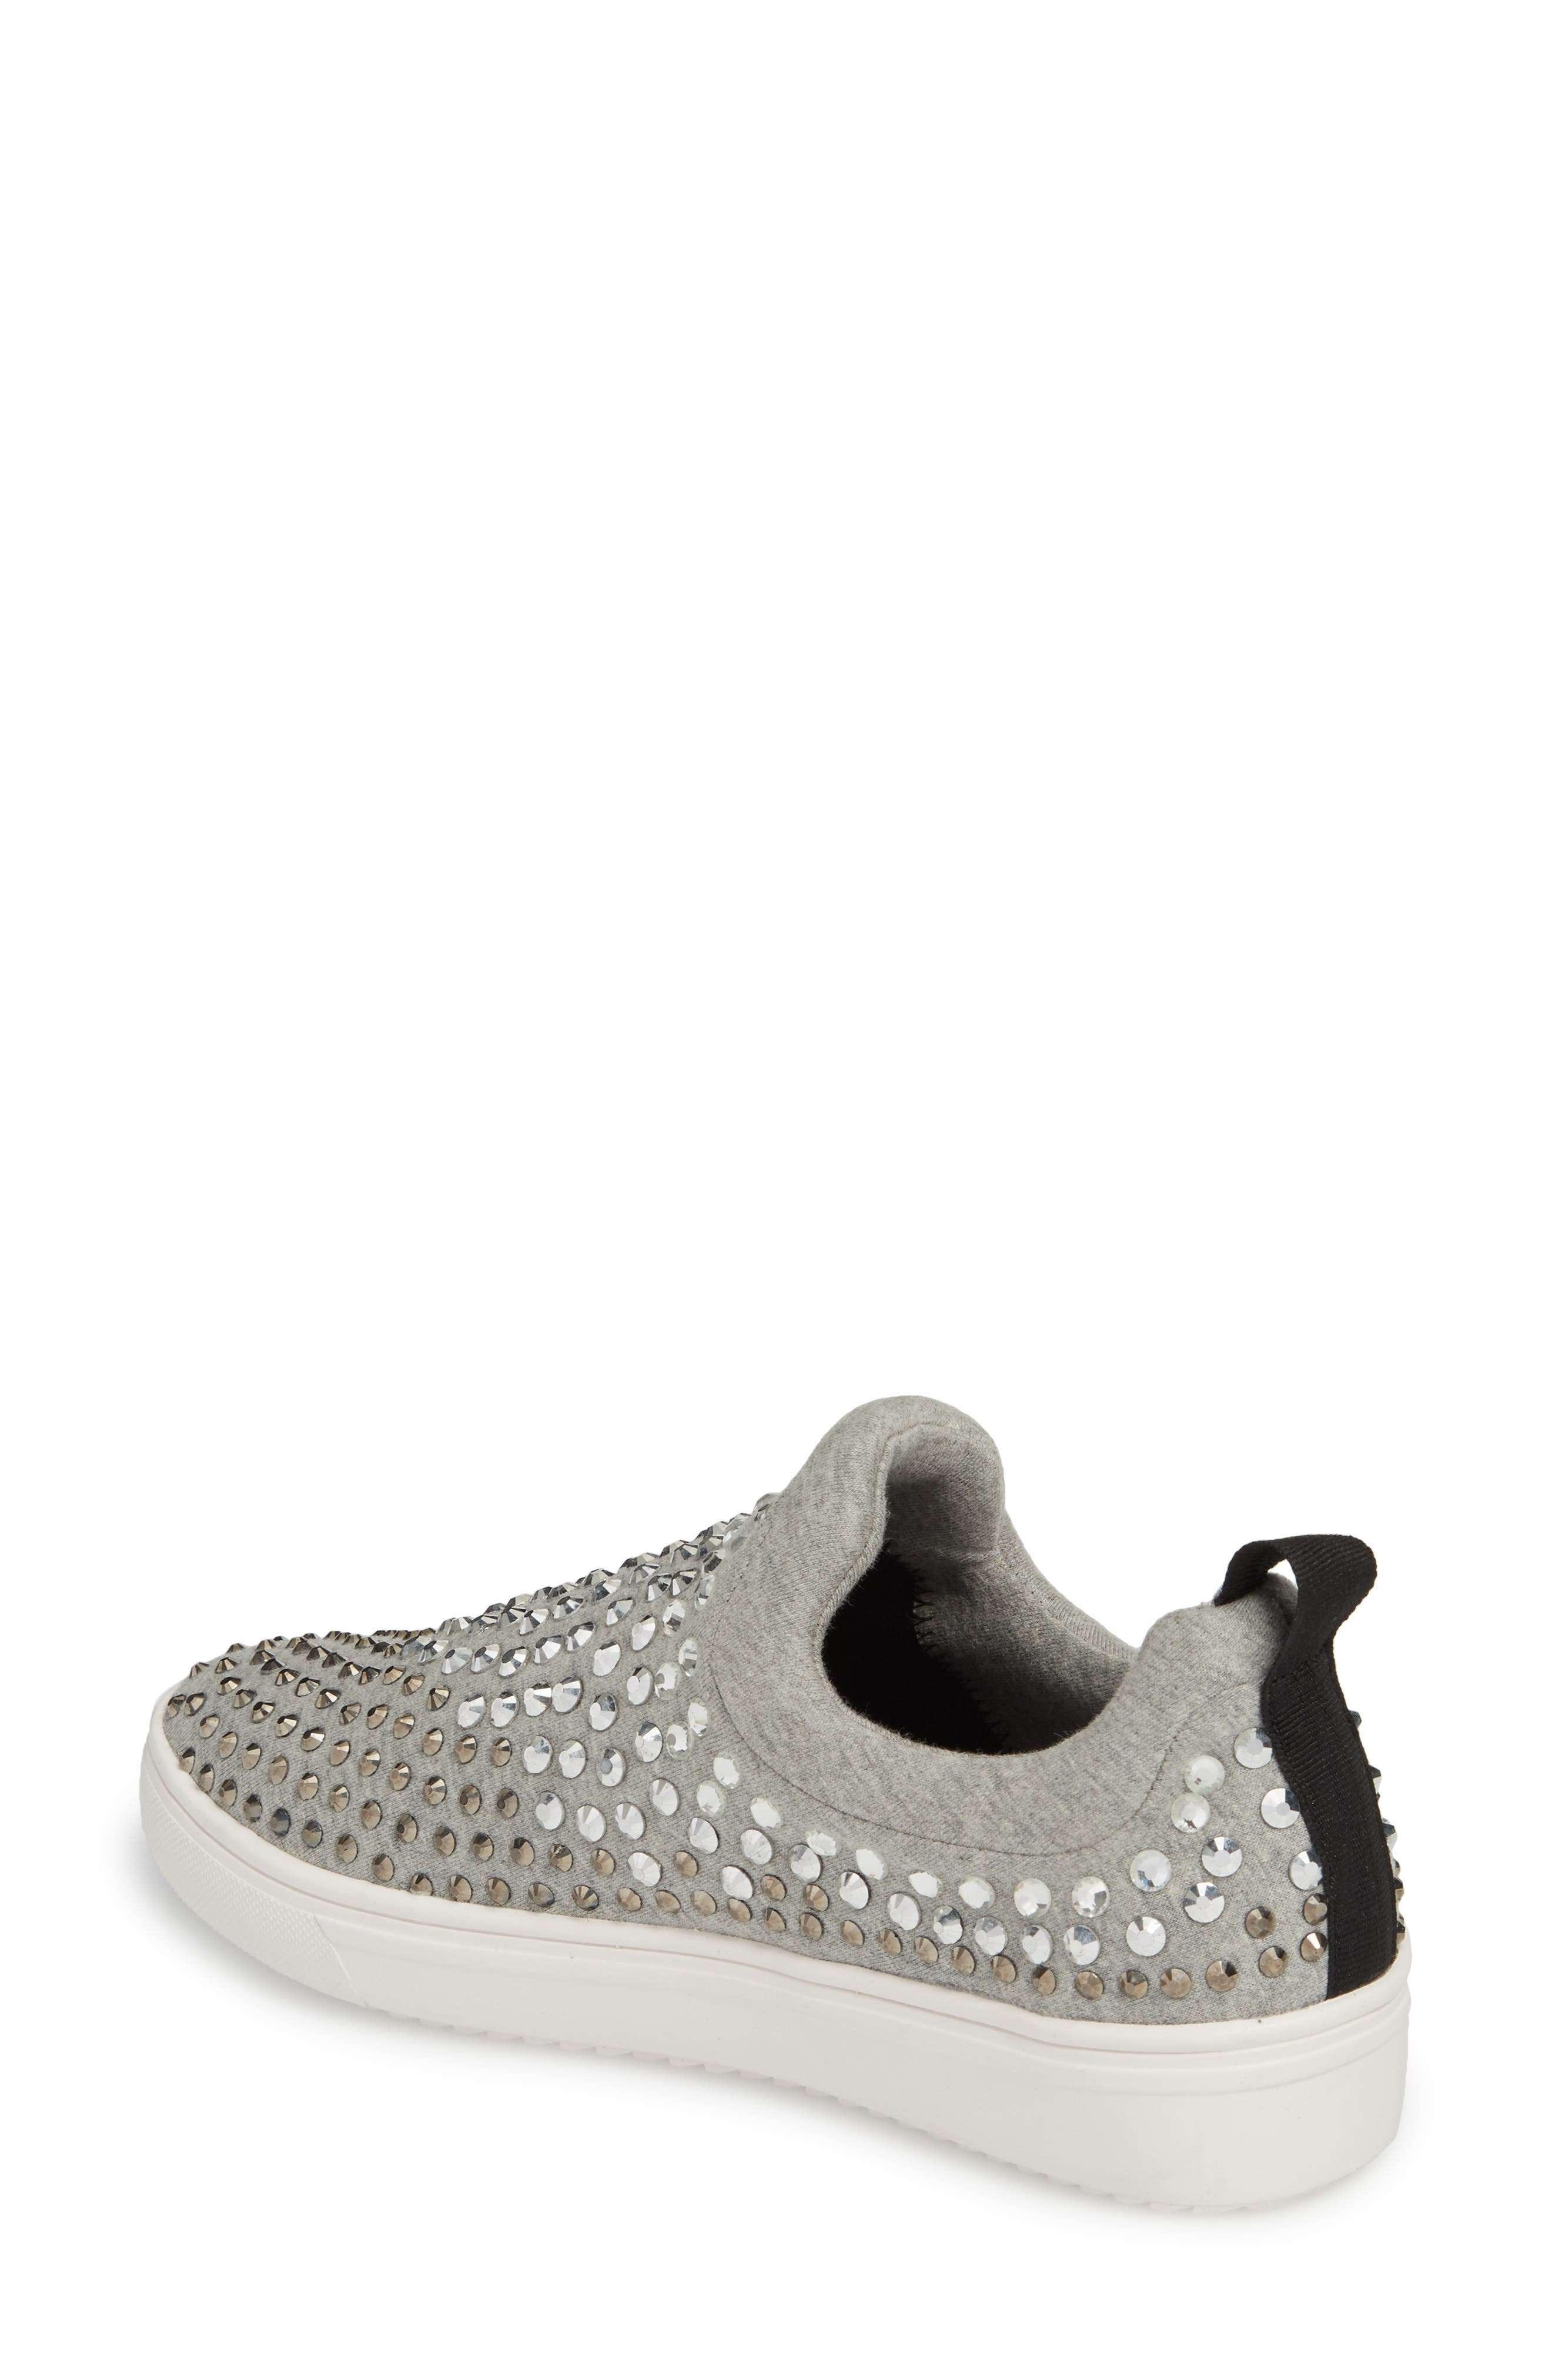 Alternate Image 2  - Steve Madden Sherry Crystal Embellished Sneaker (Women)